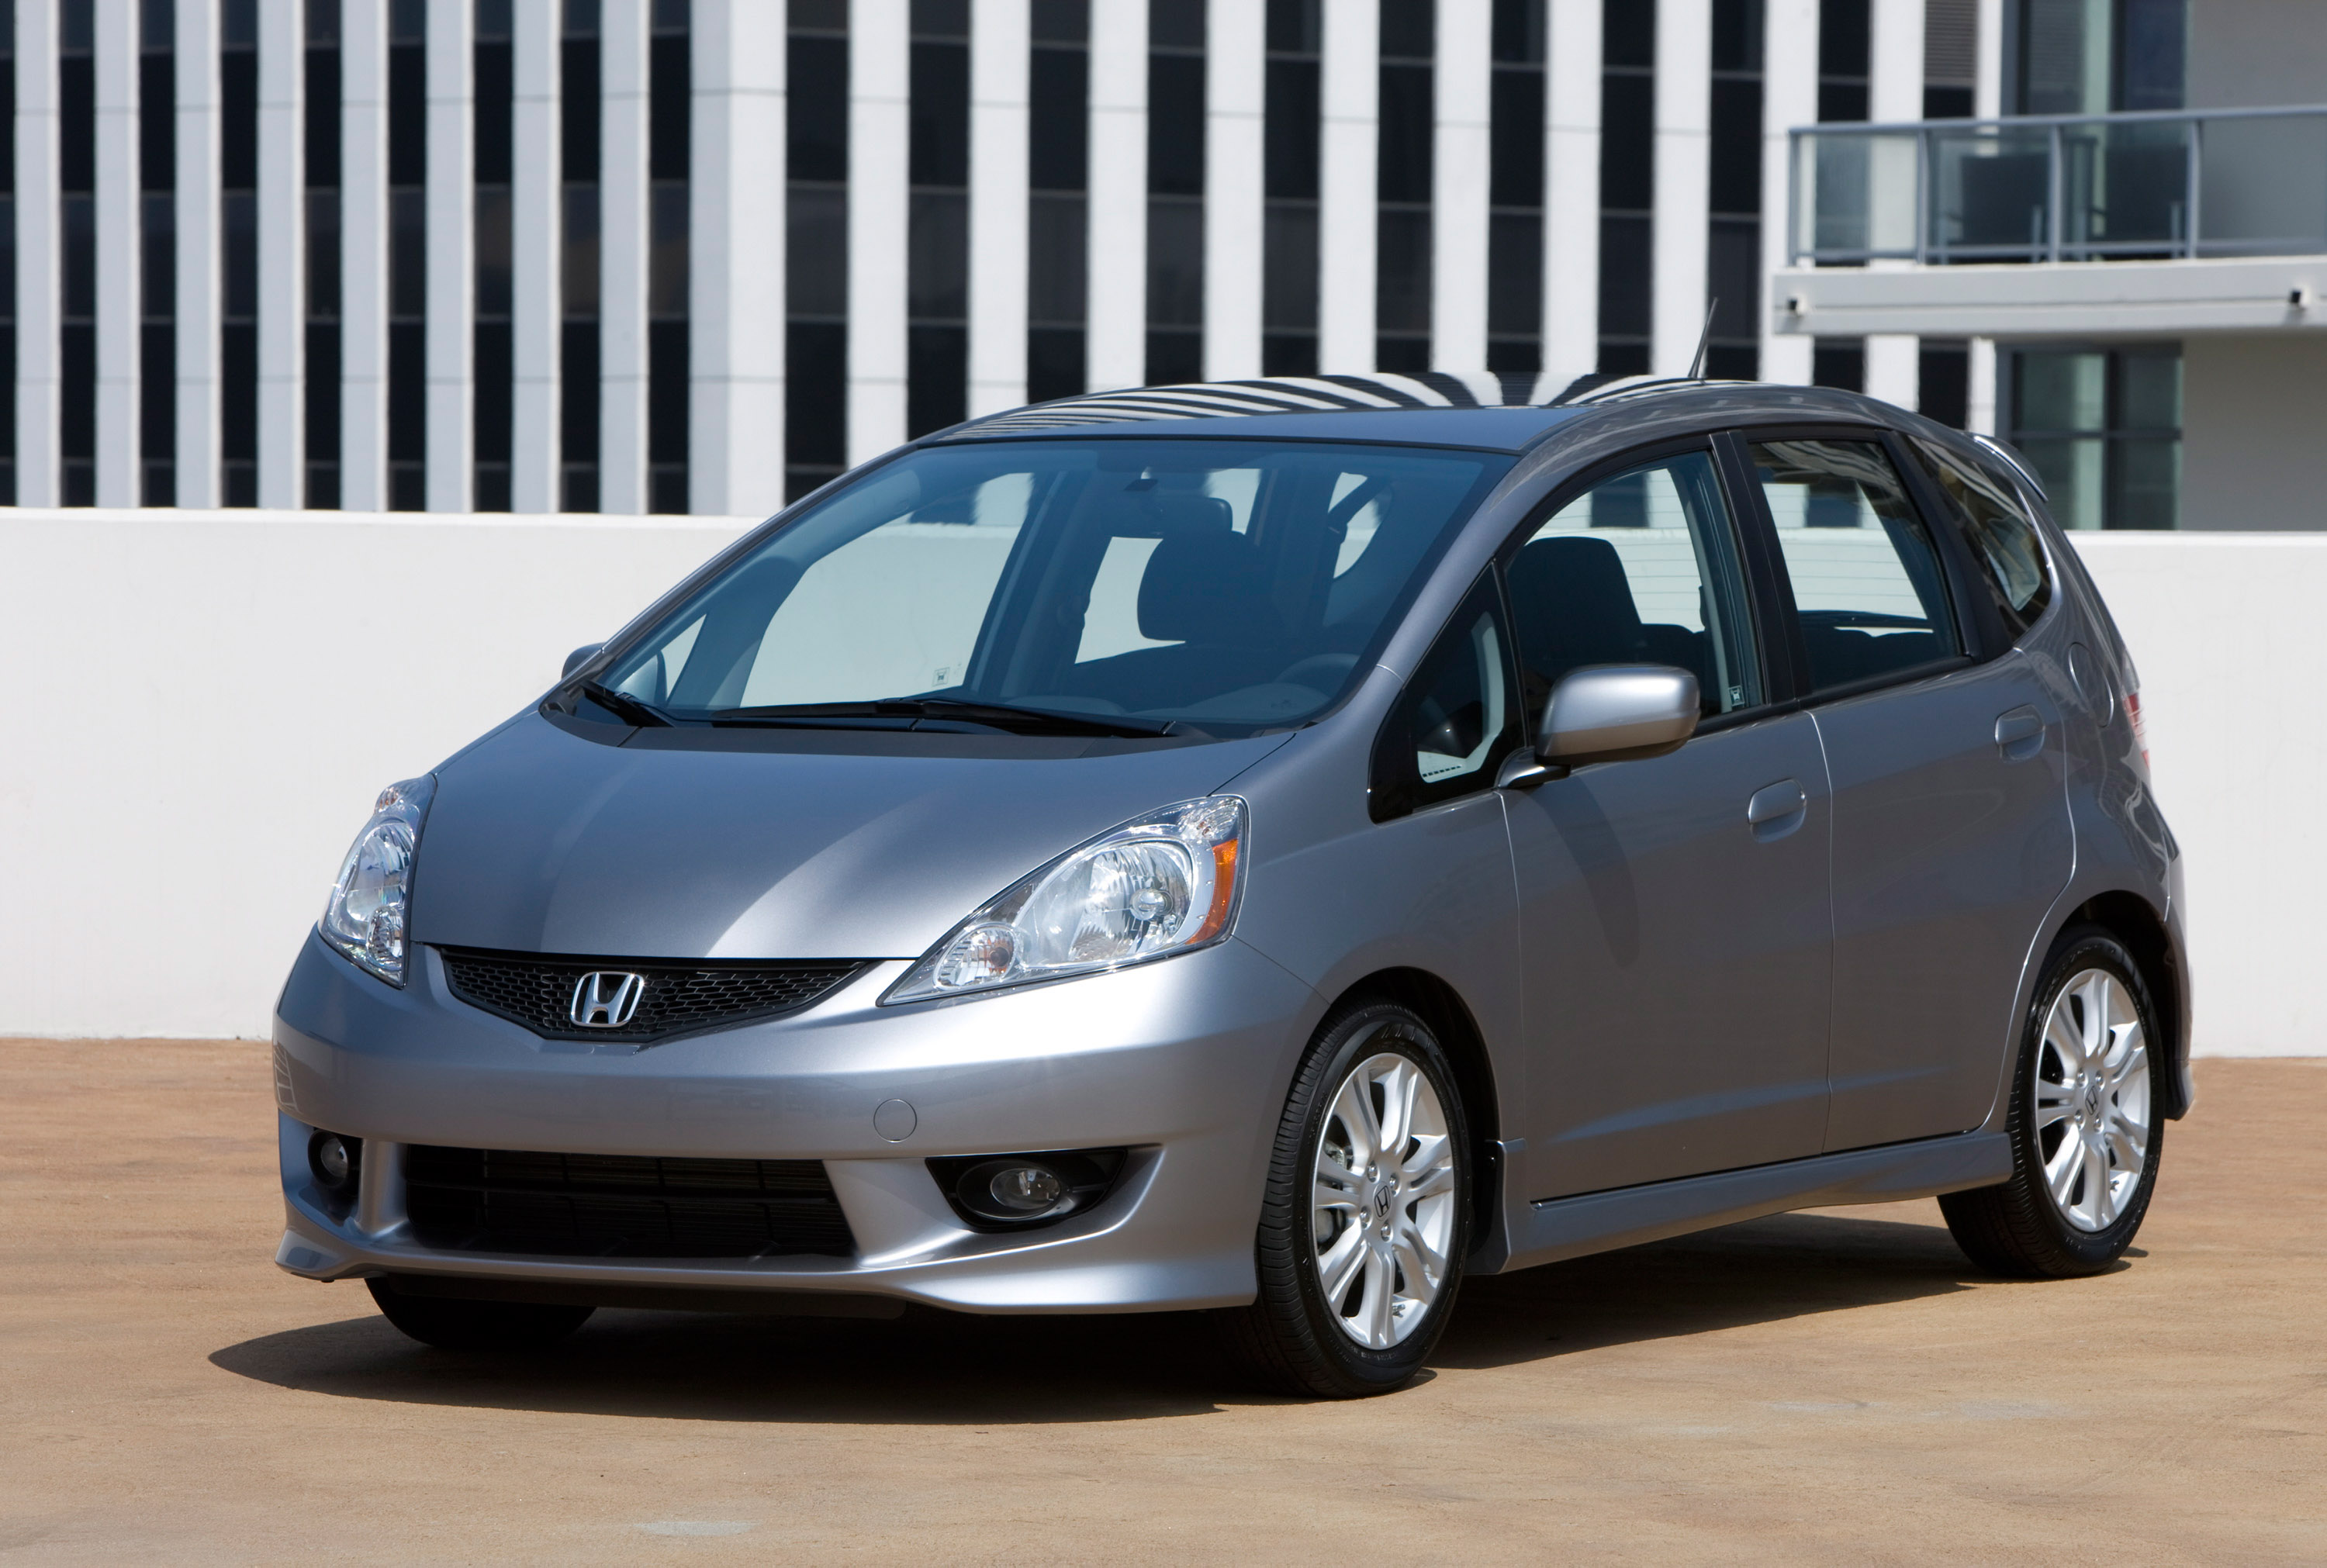 2010 honda fit fits everything rh automobilesreview com manual honda fit 2006 español manual honda fit 2006 pdf